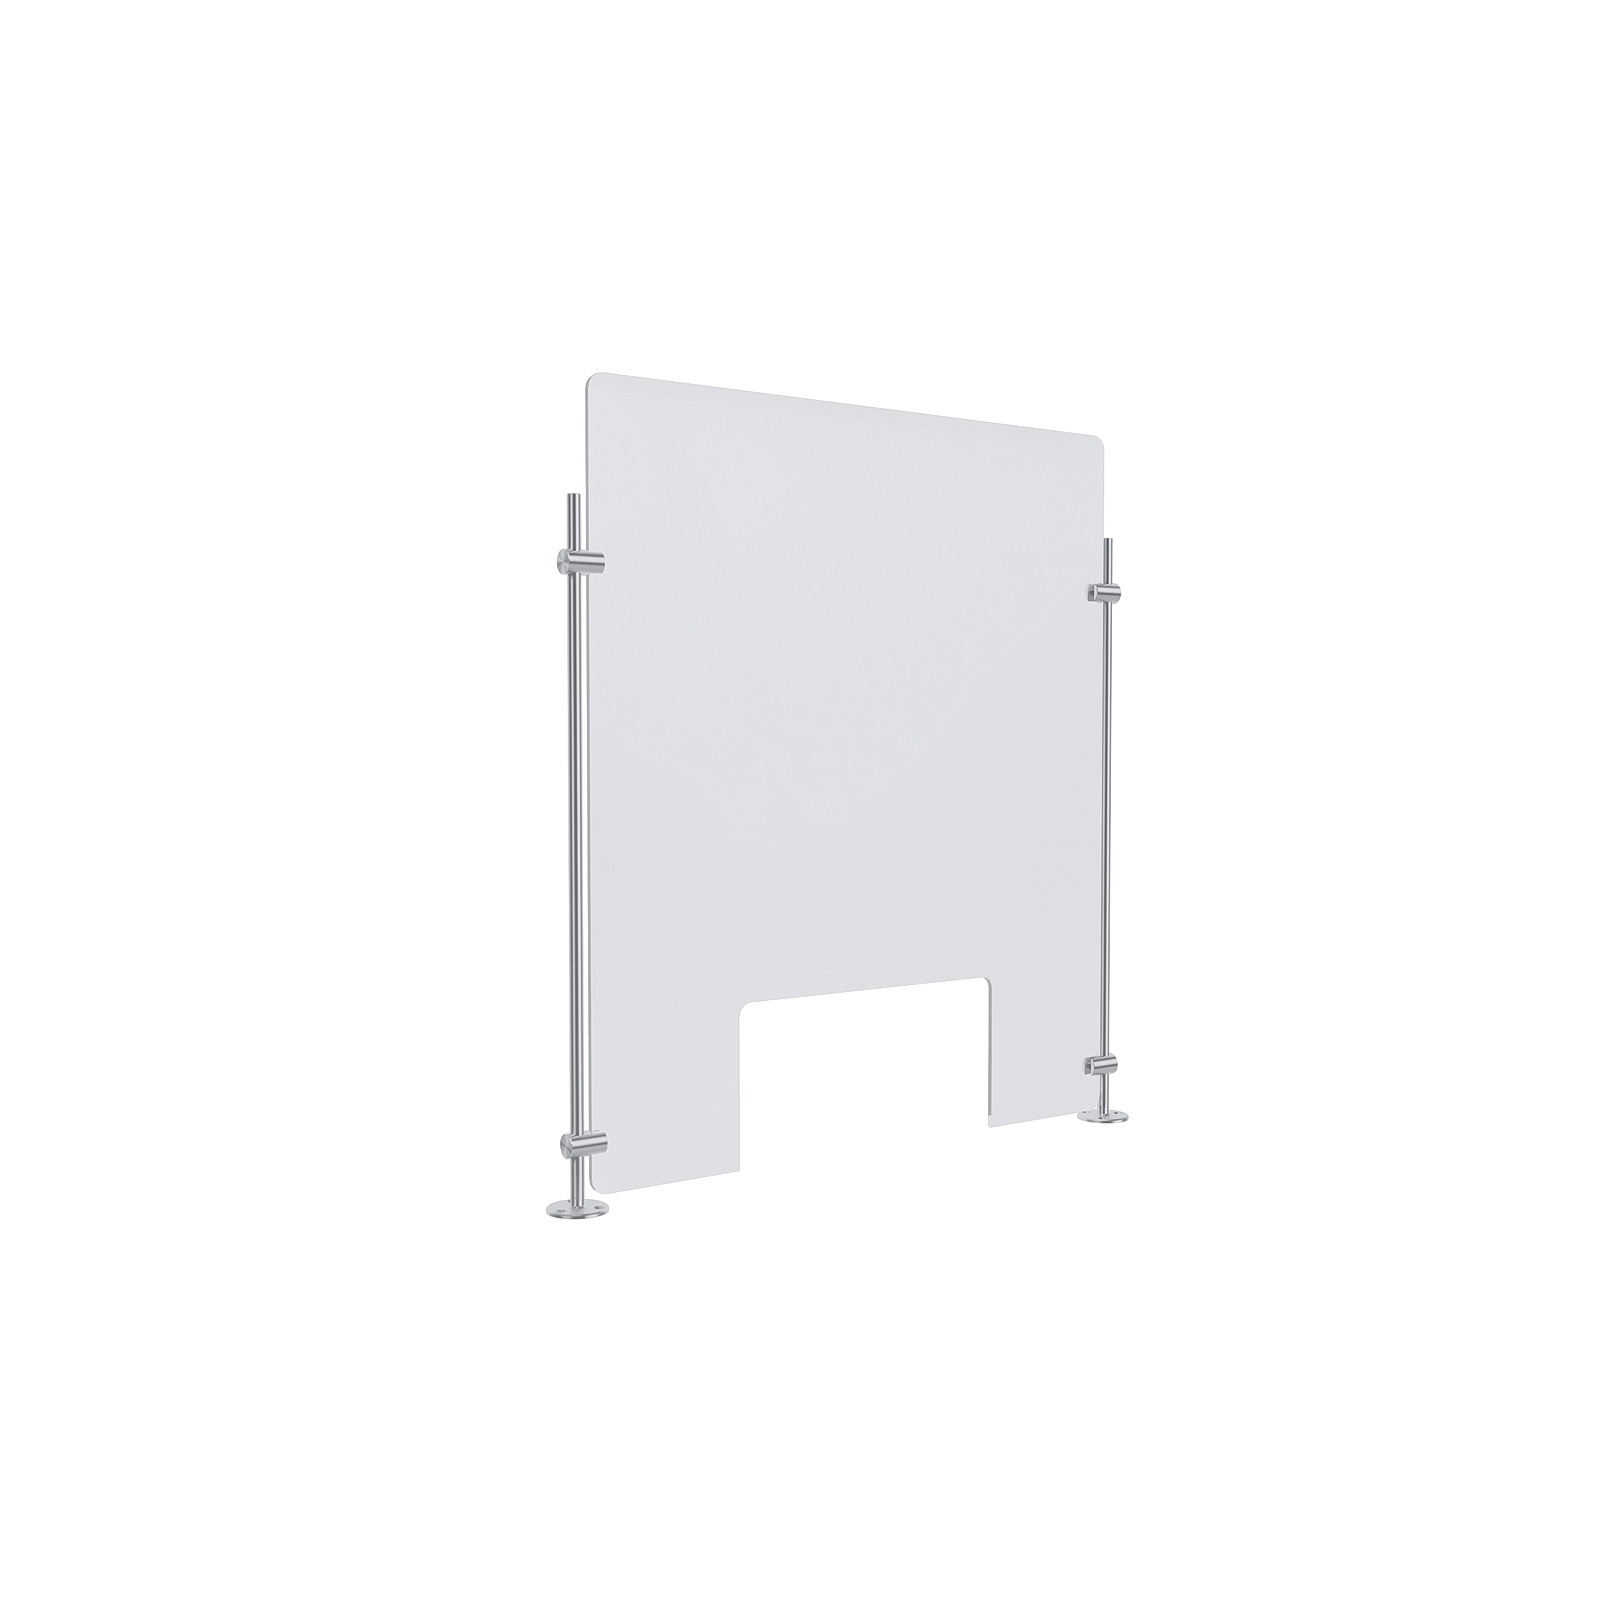 Clear Acrylic Sneeze Guard 20'' Wide x 23-1/2'' Tall (10'' x 5'' Cut Out), with (2) 20'' Tall x 3/8'' Diameter Clear Anodized Aluminum Rod on the Side.